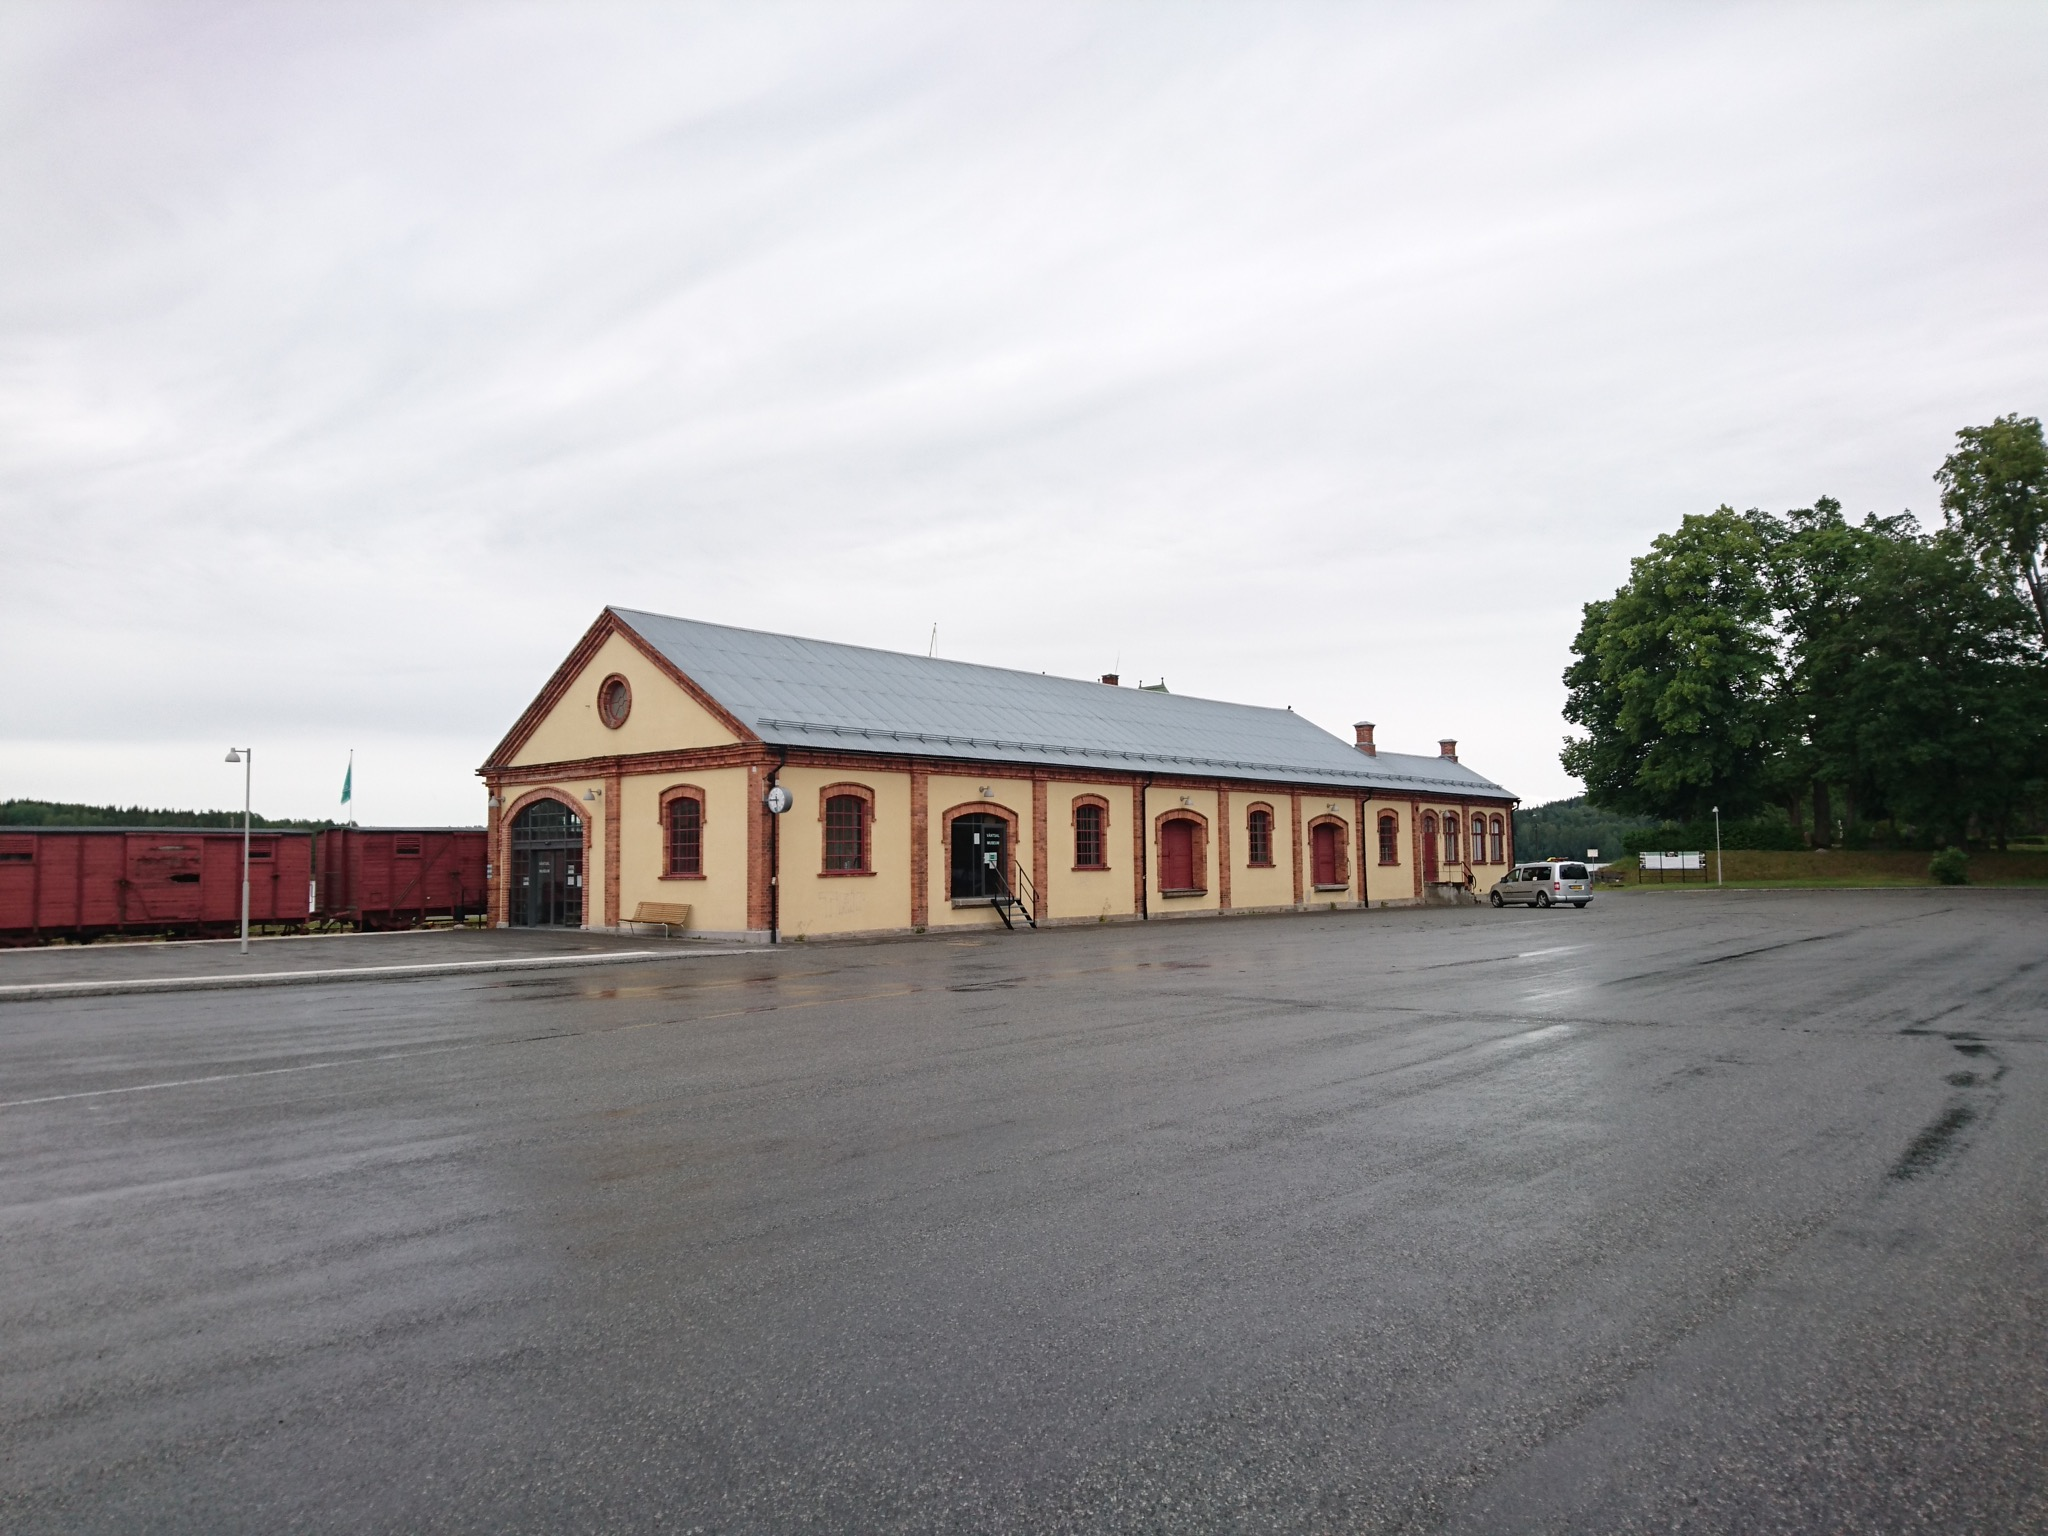 Nora station, museum